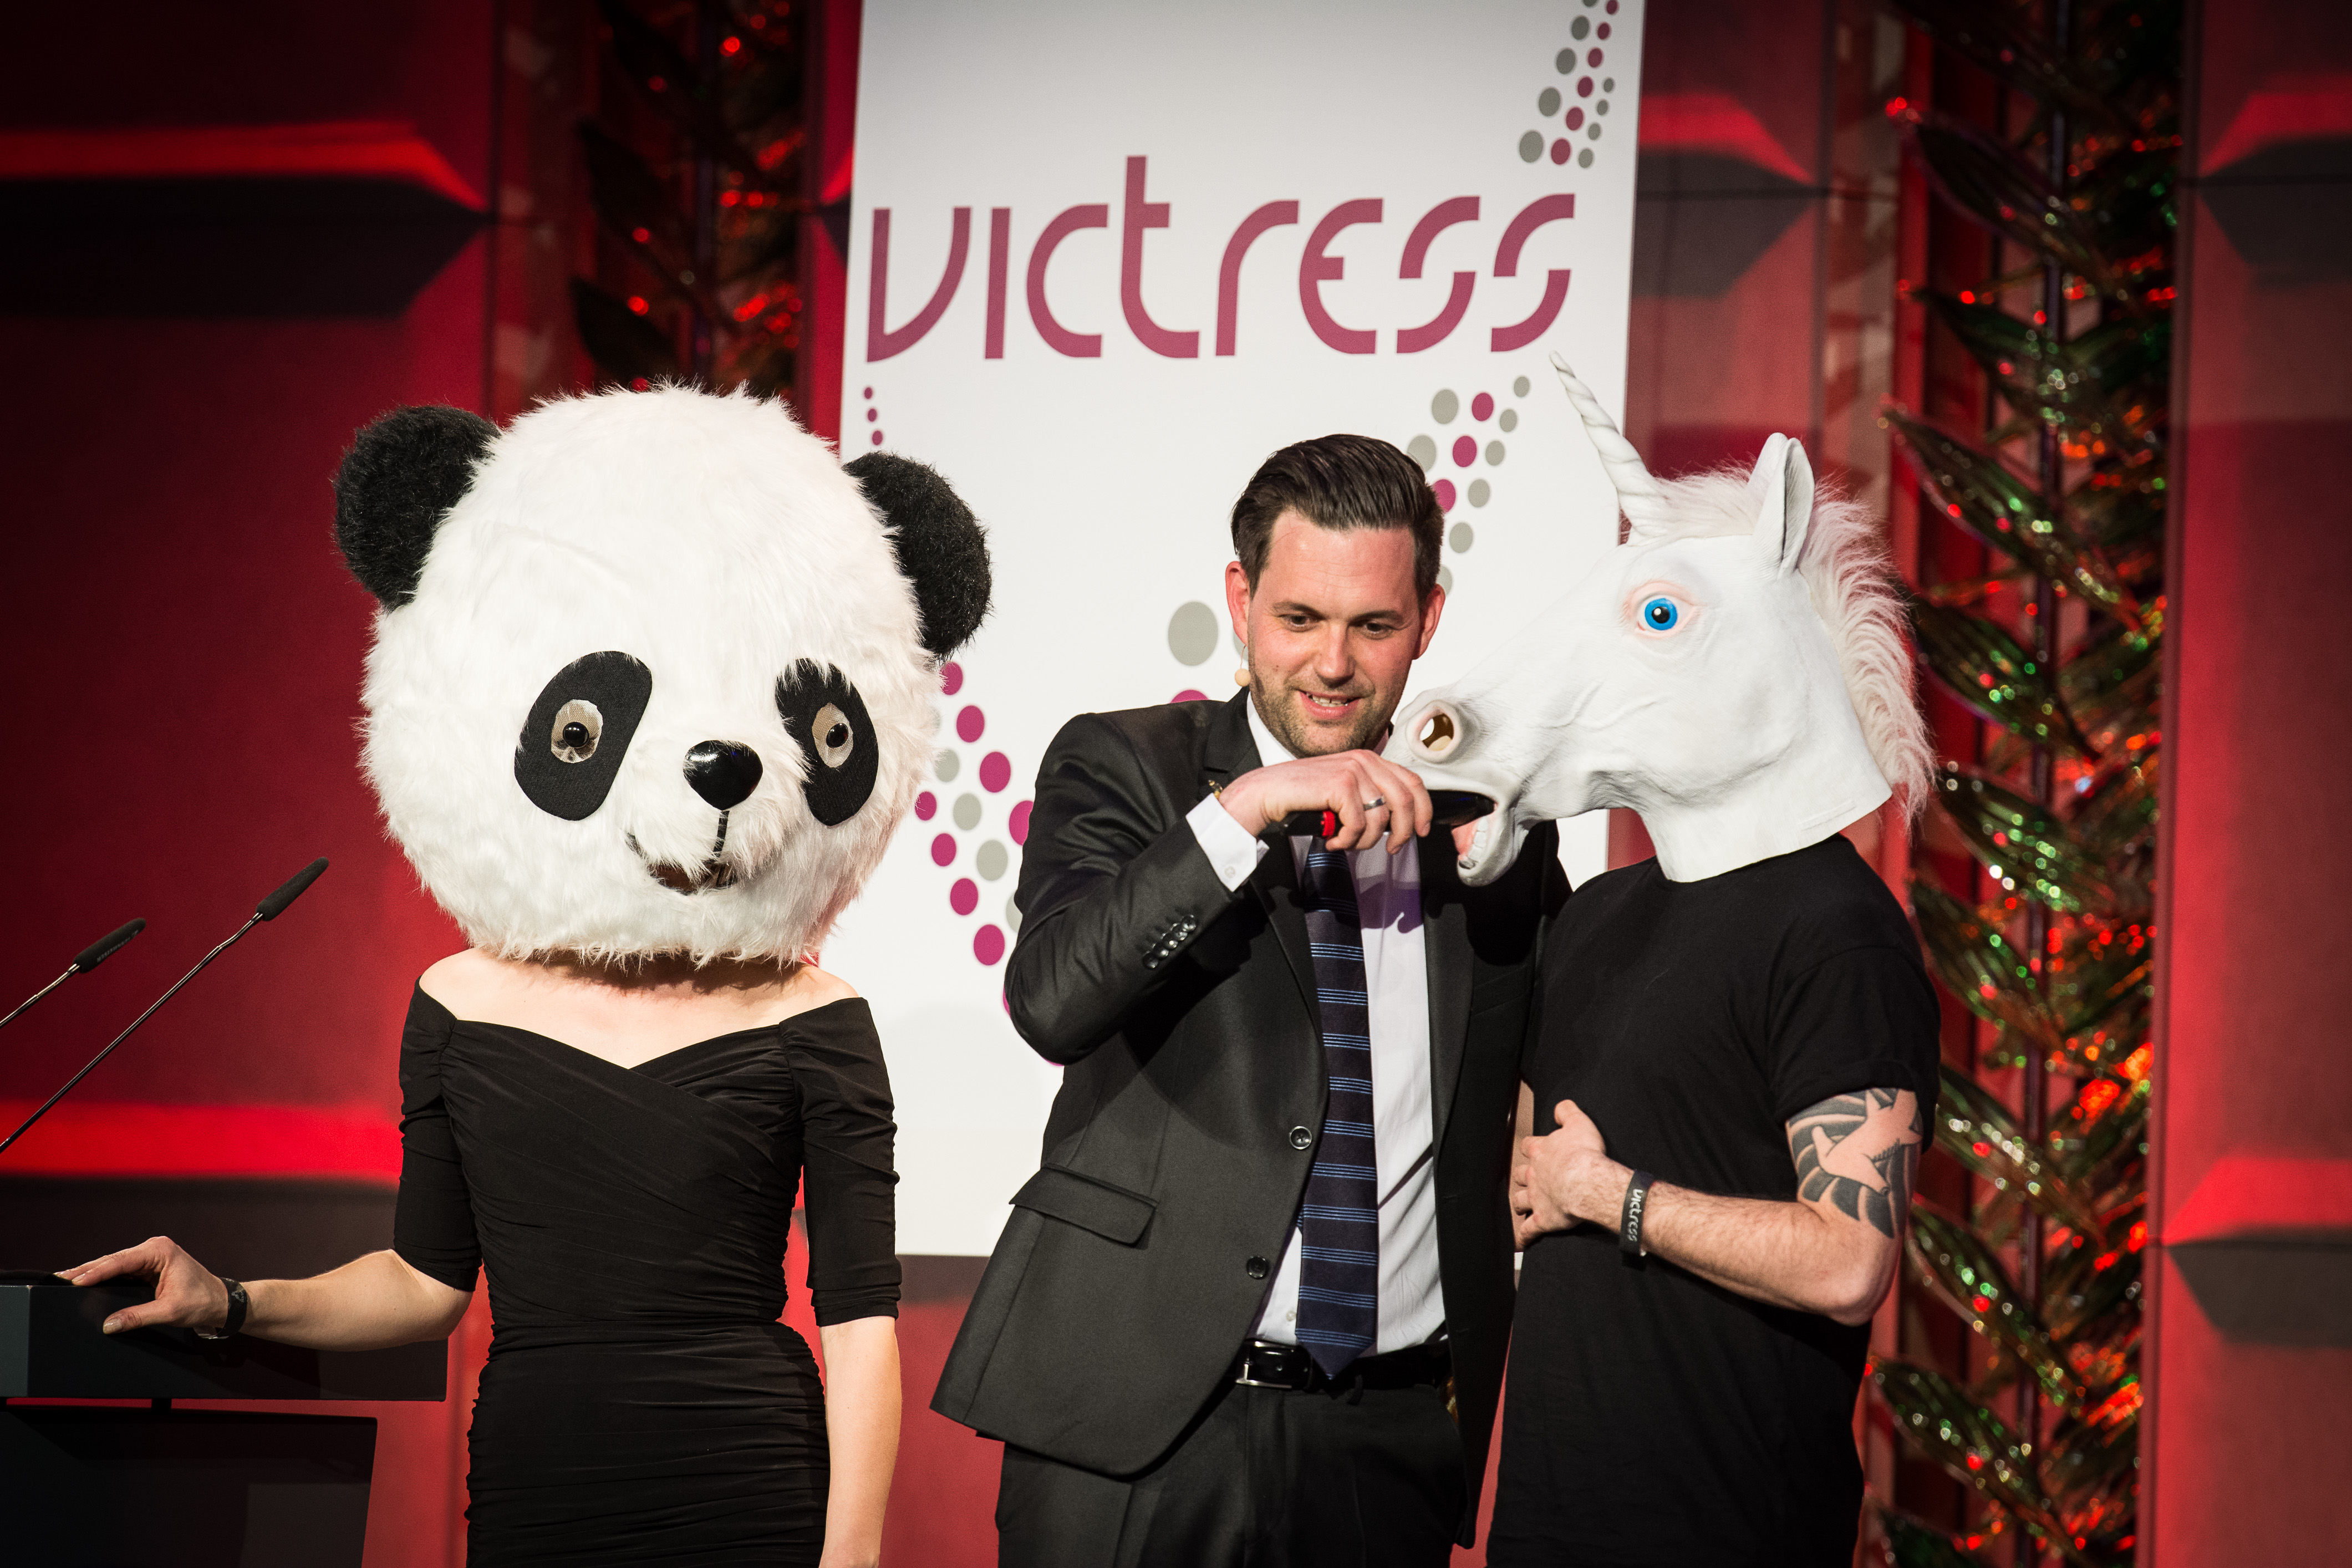 VictressAwards 2016_160_D71_0779